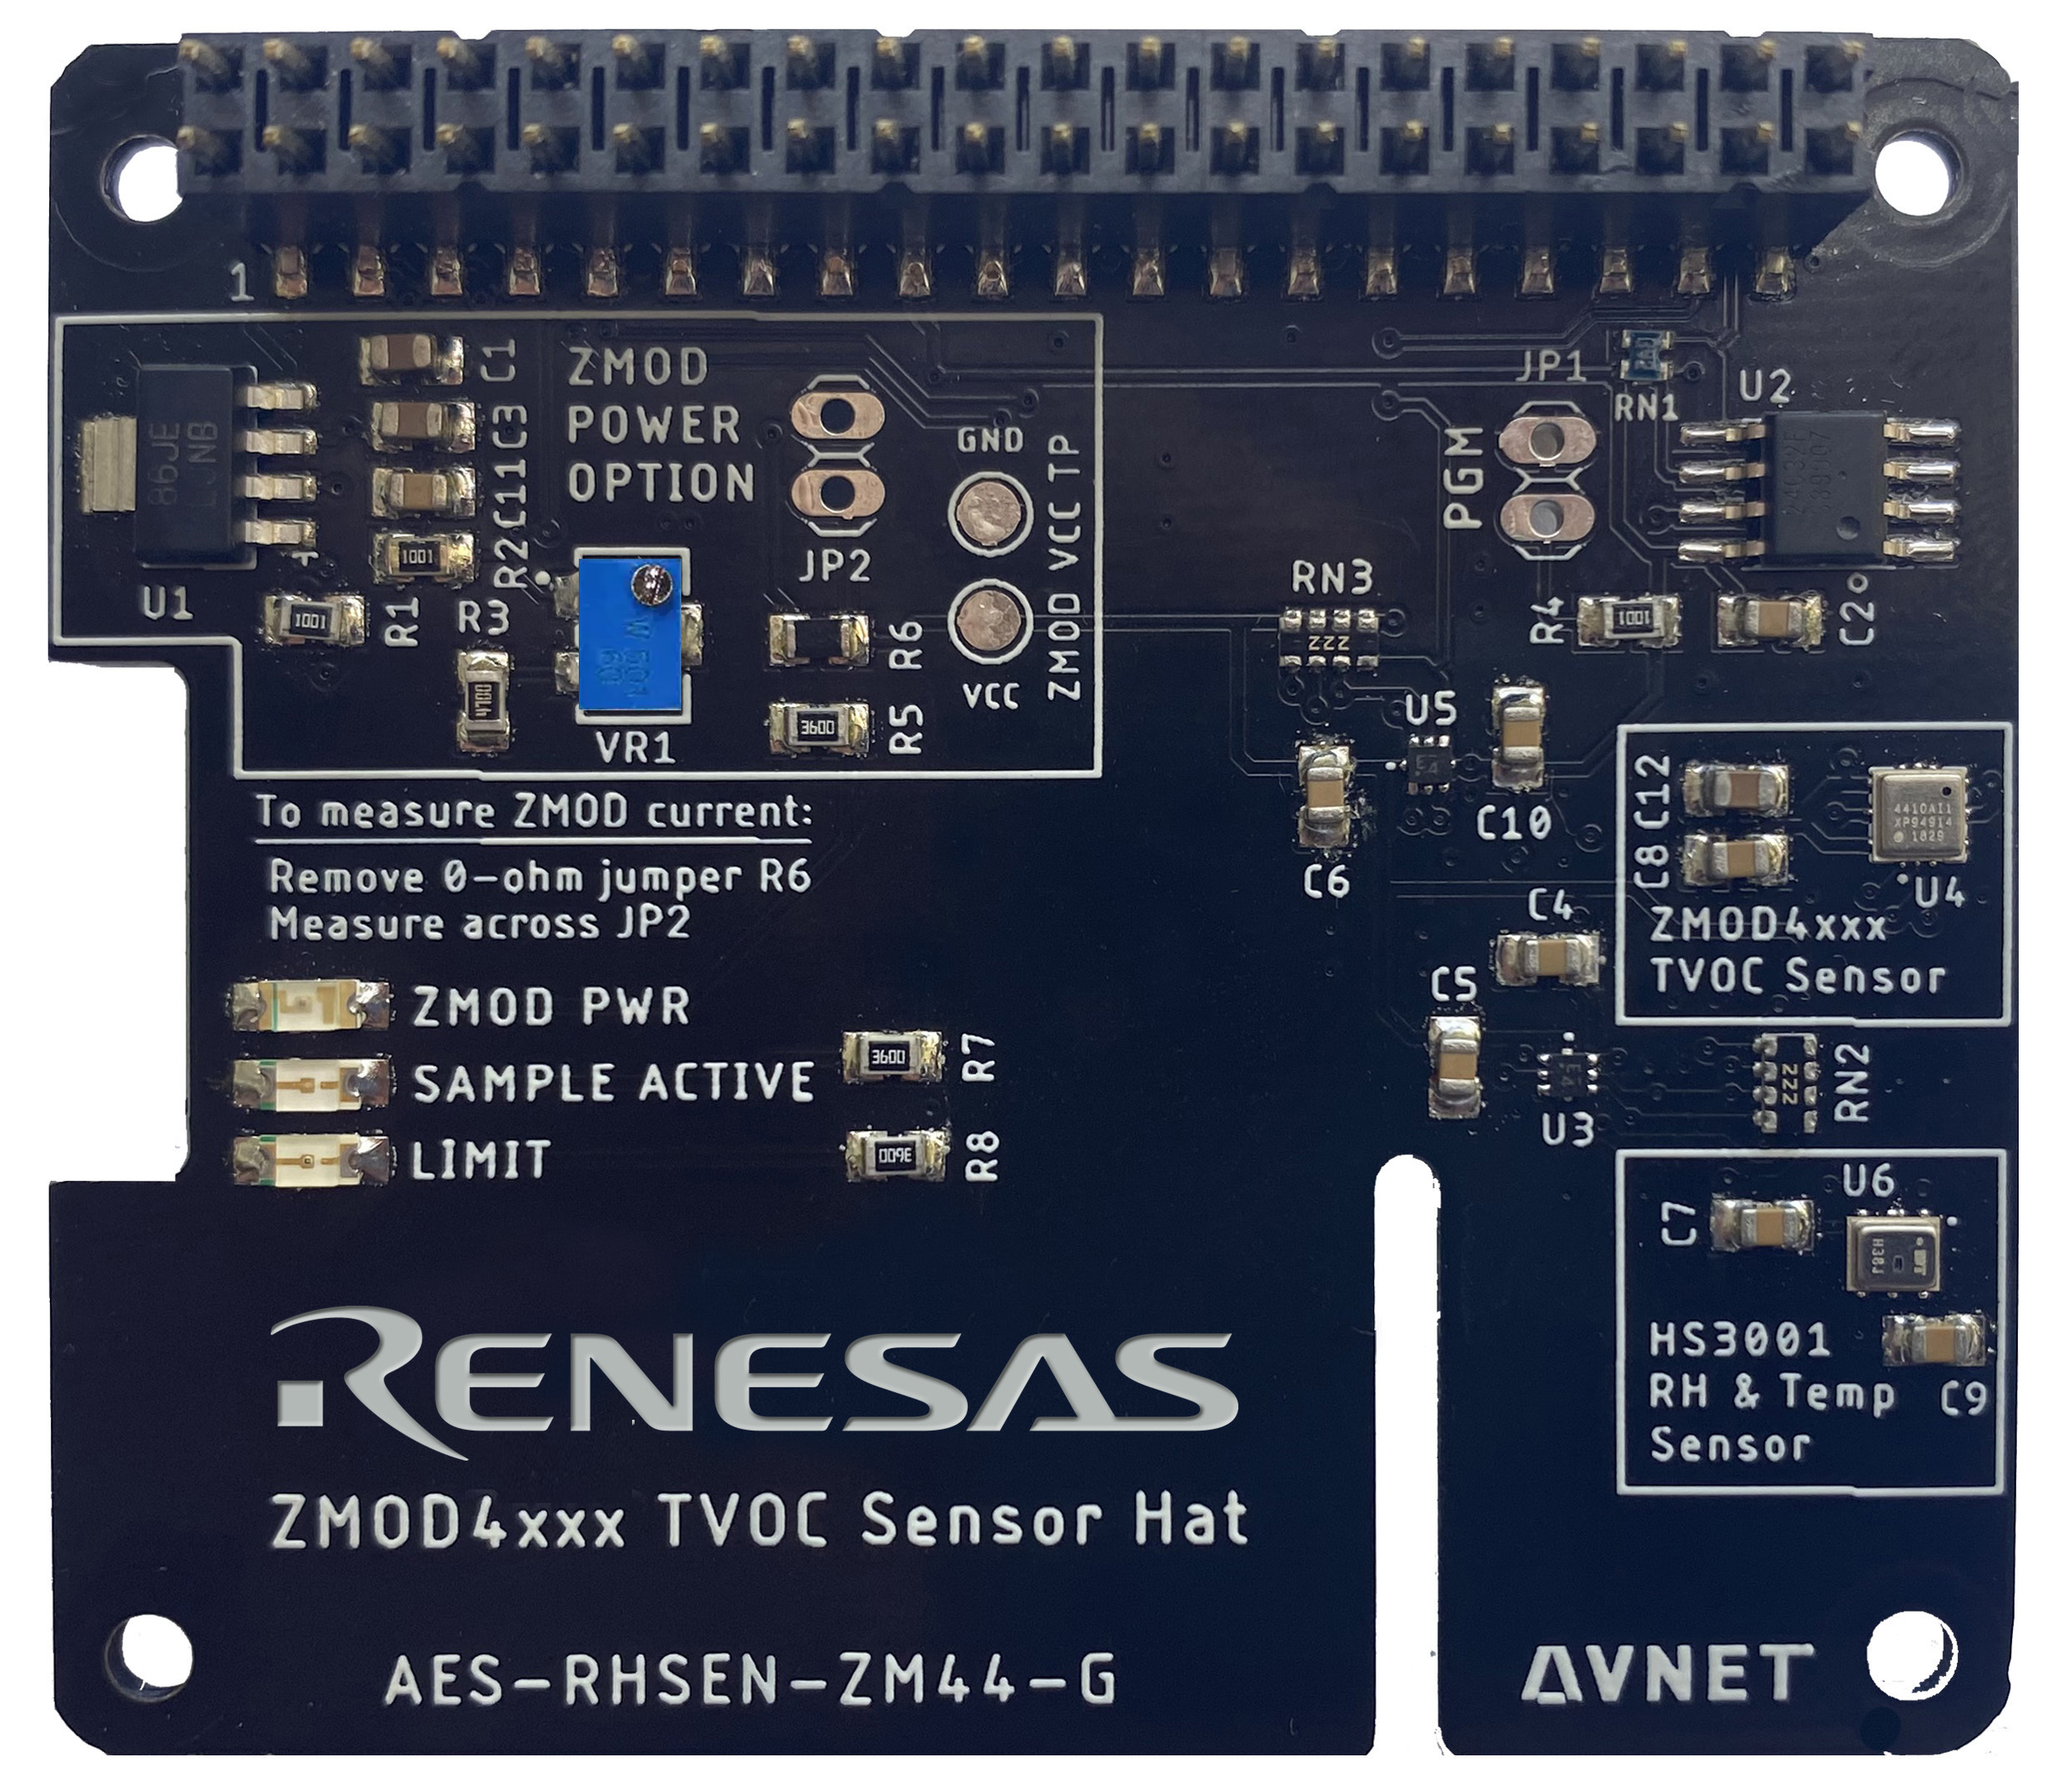 Avnet's Renesas ZMOD4410 Indoor Air Quality HAT for Raspberry Pi